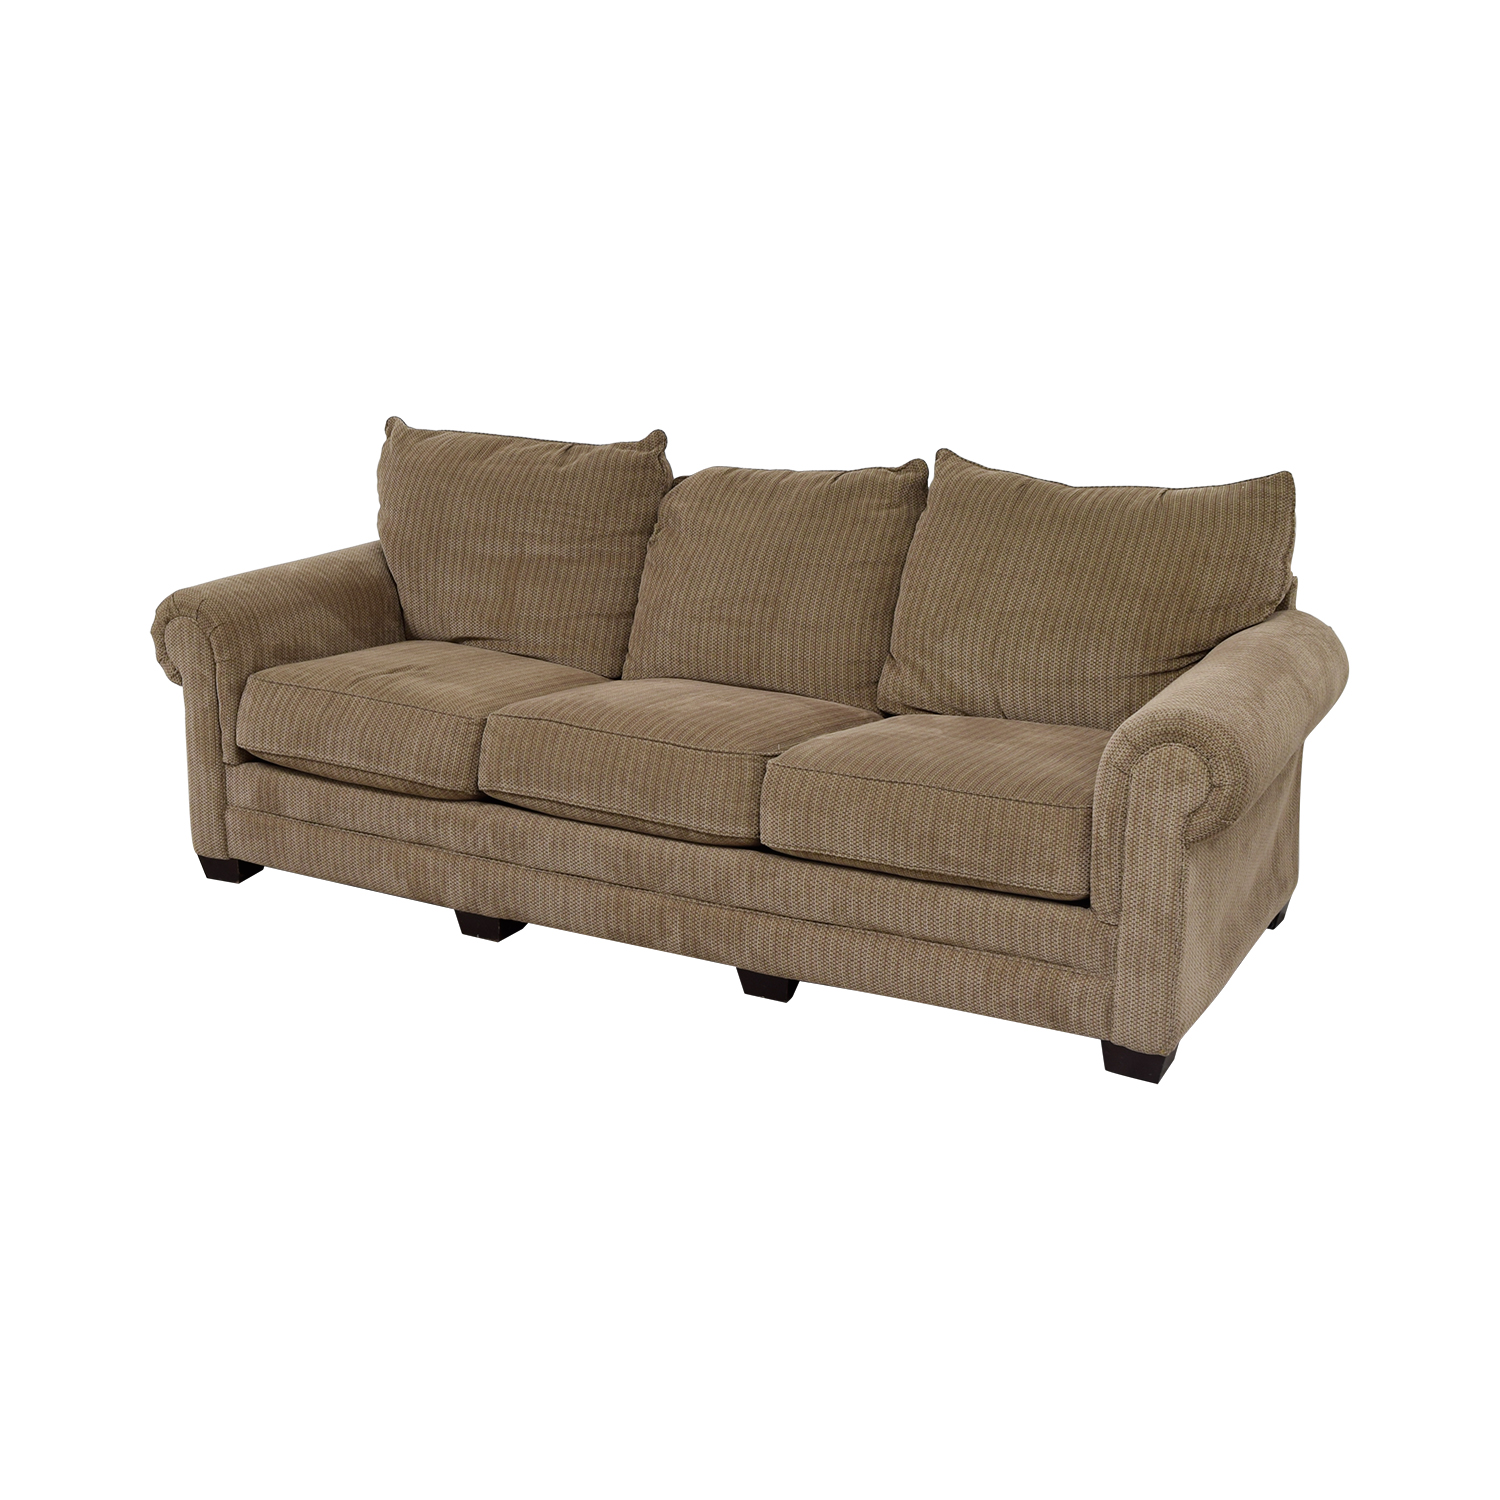 Tan Three-Cushion Couch discount